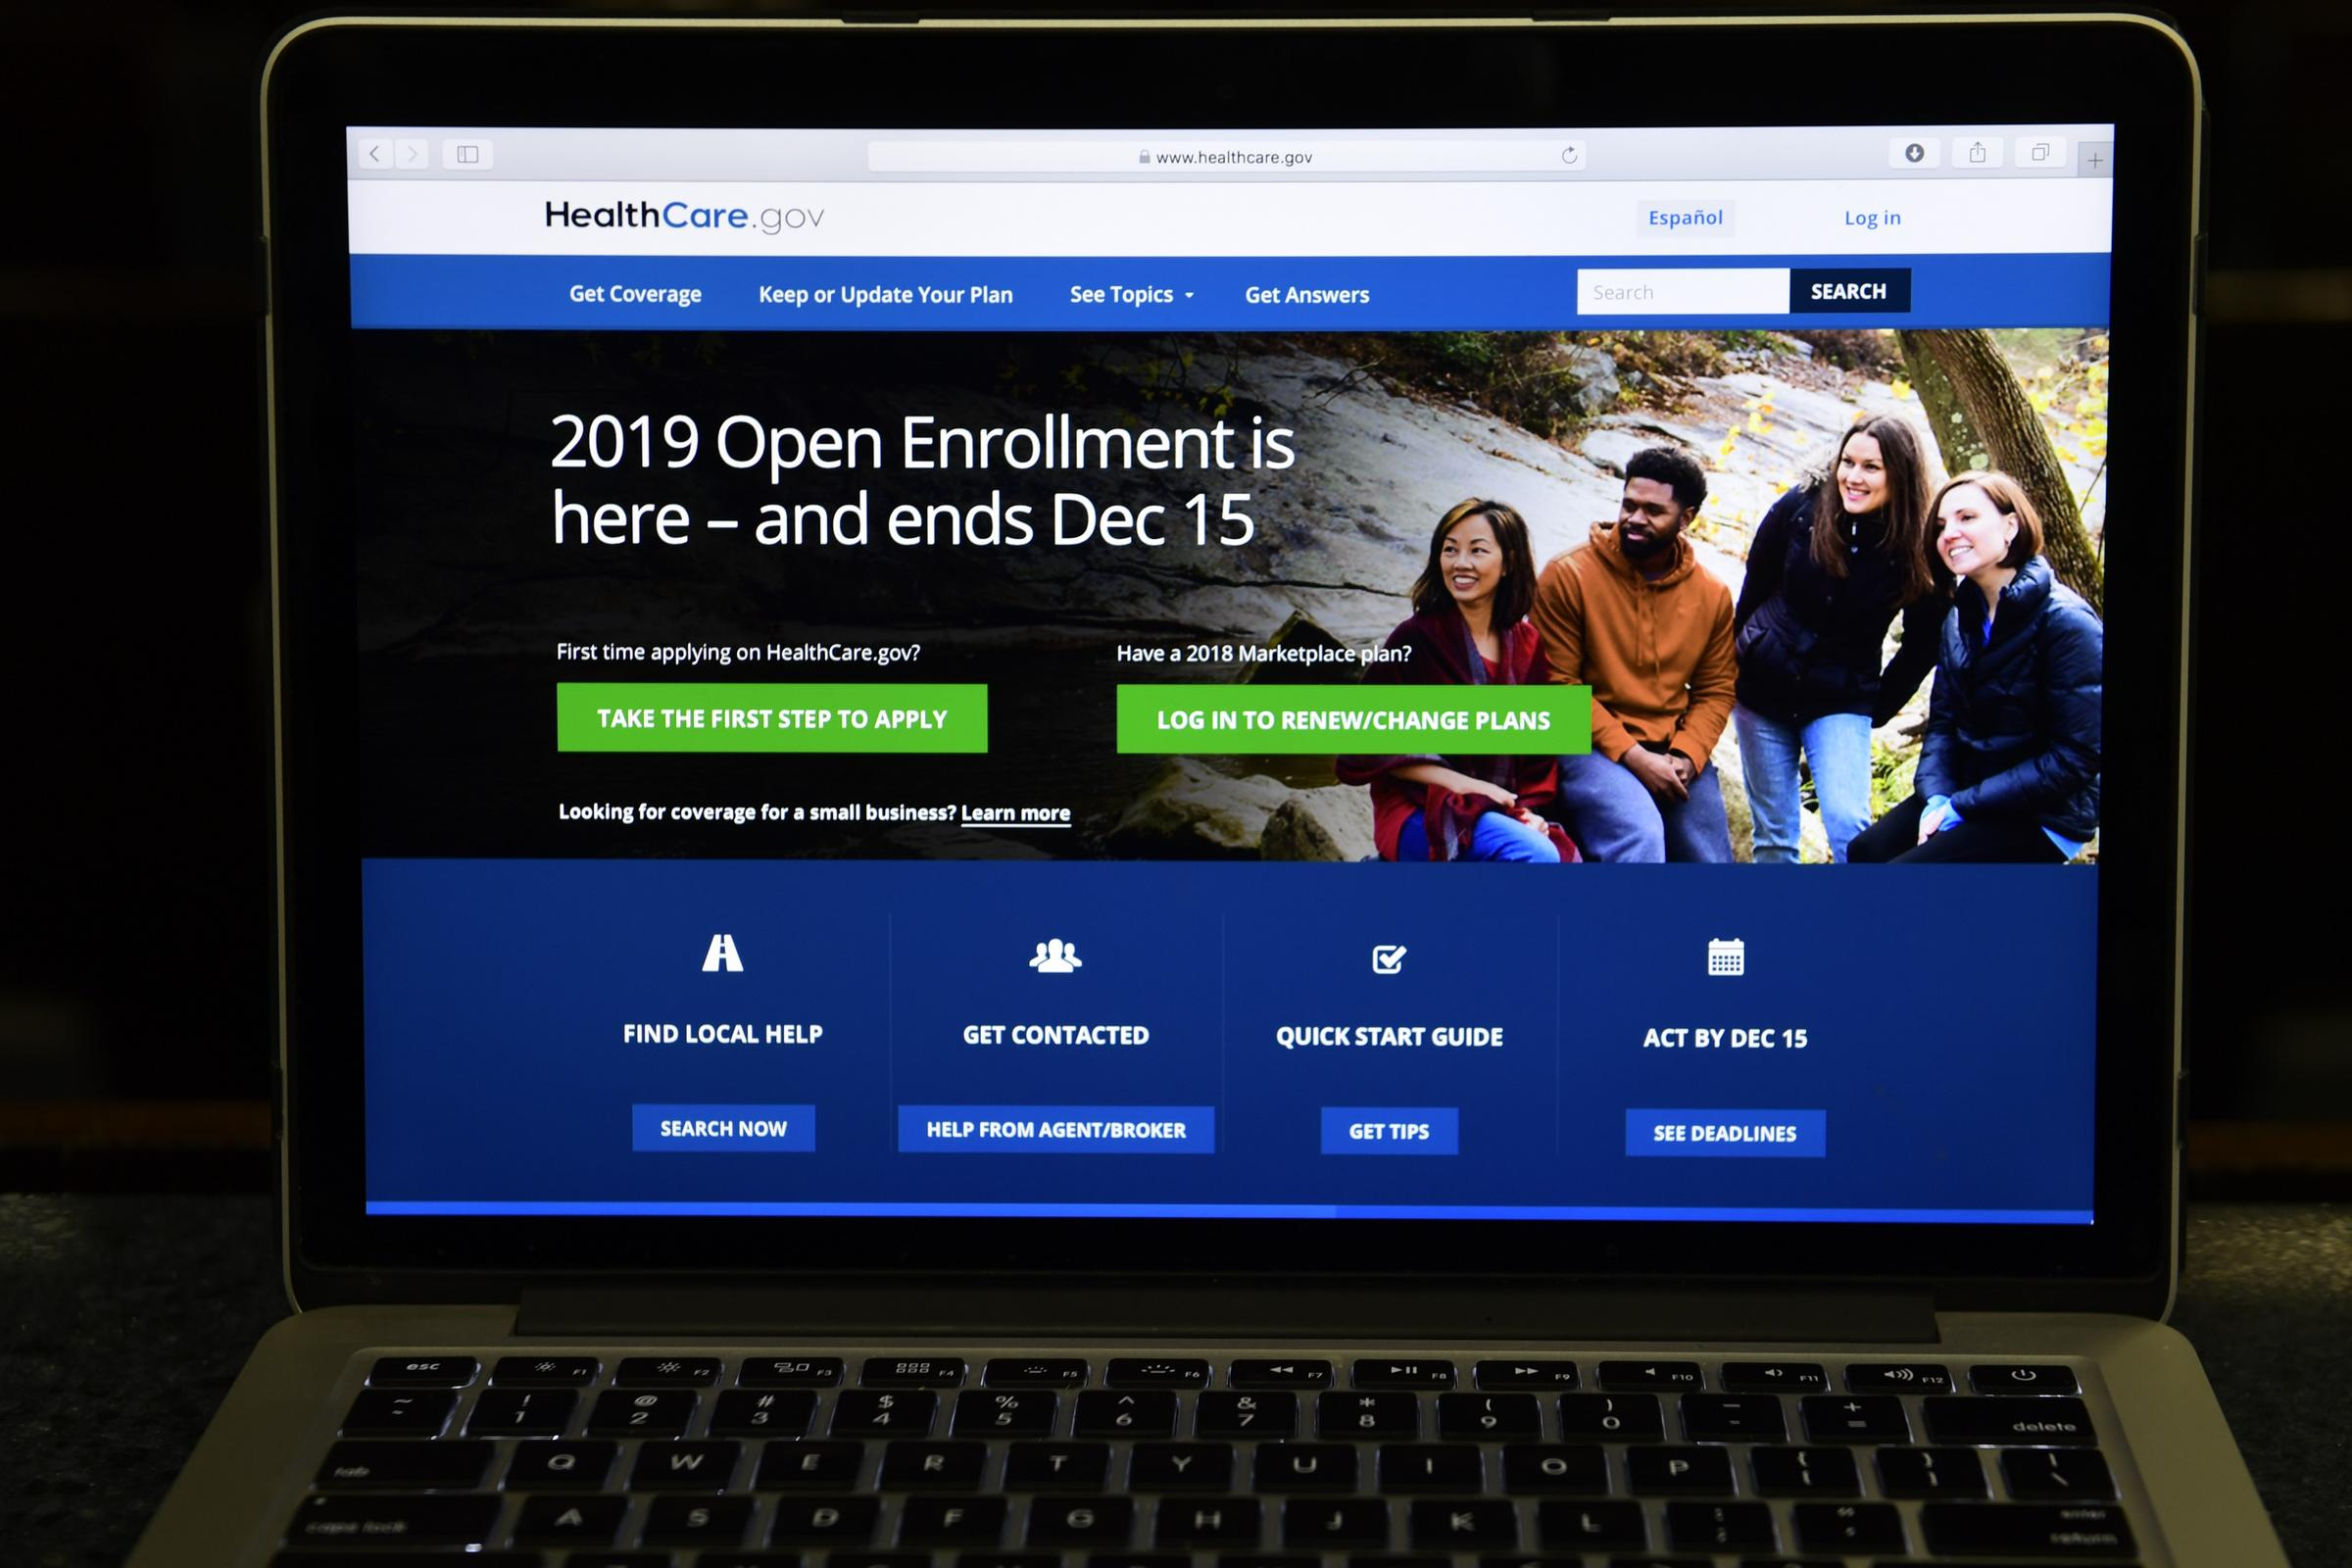 Texas judge rules 'Obamacare' unconstitutional, so now what?